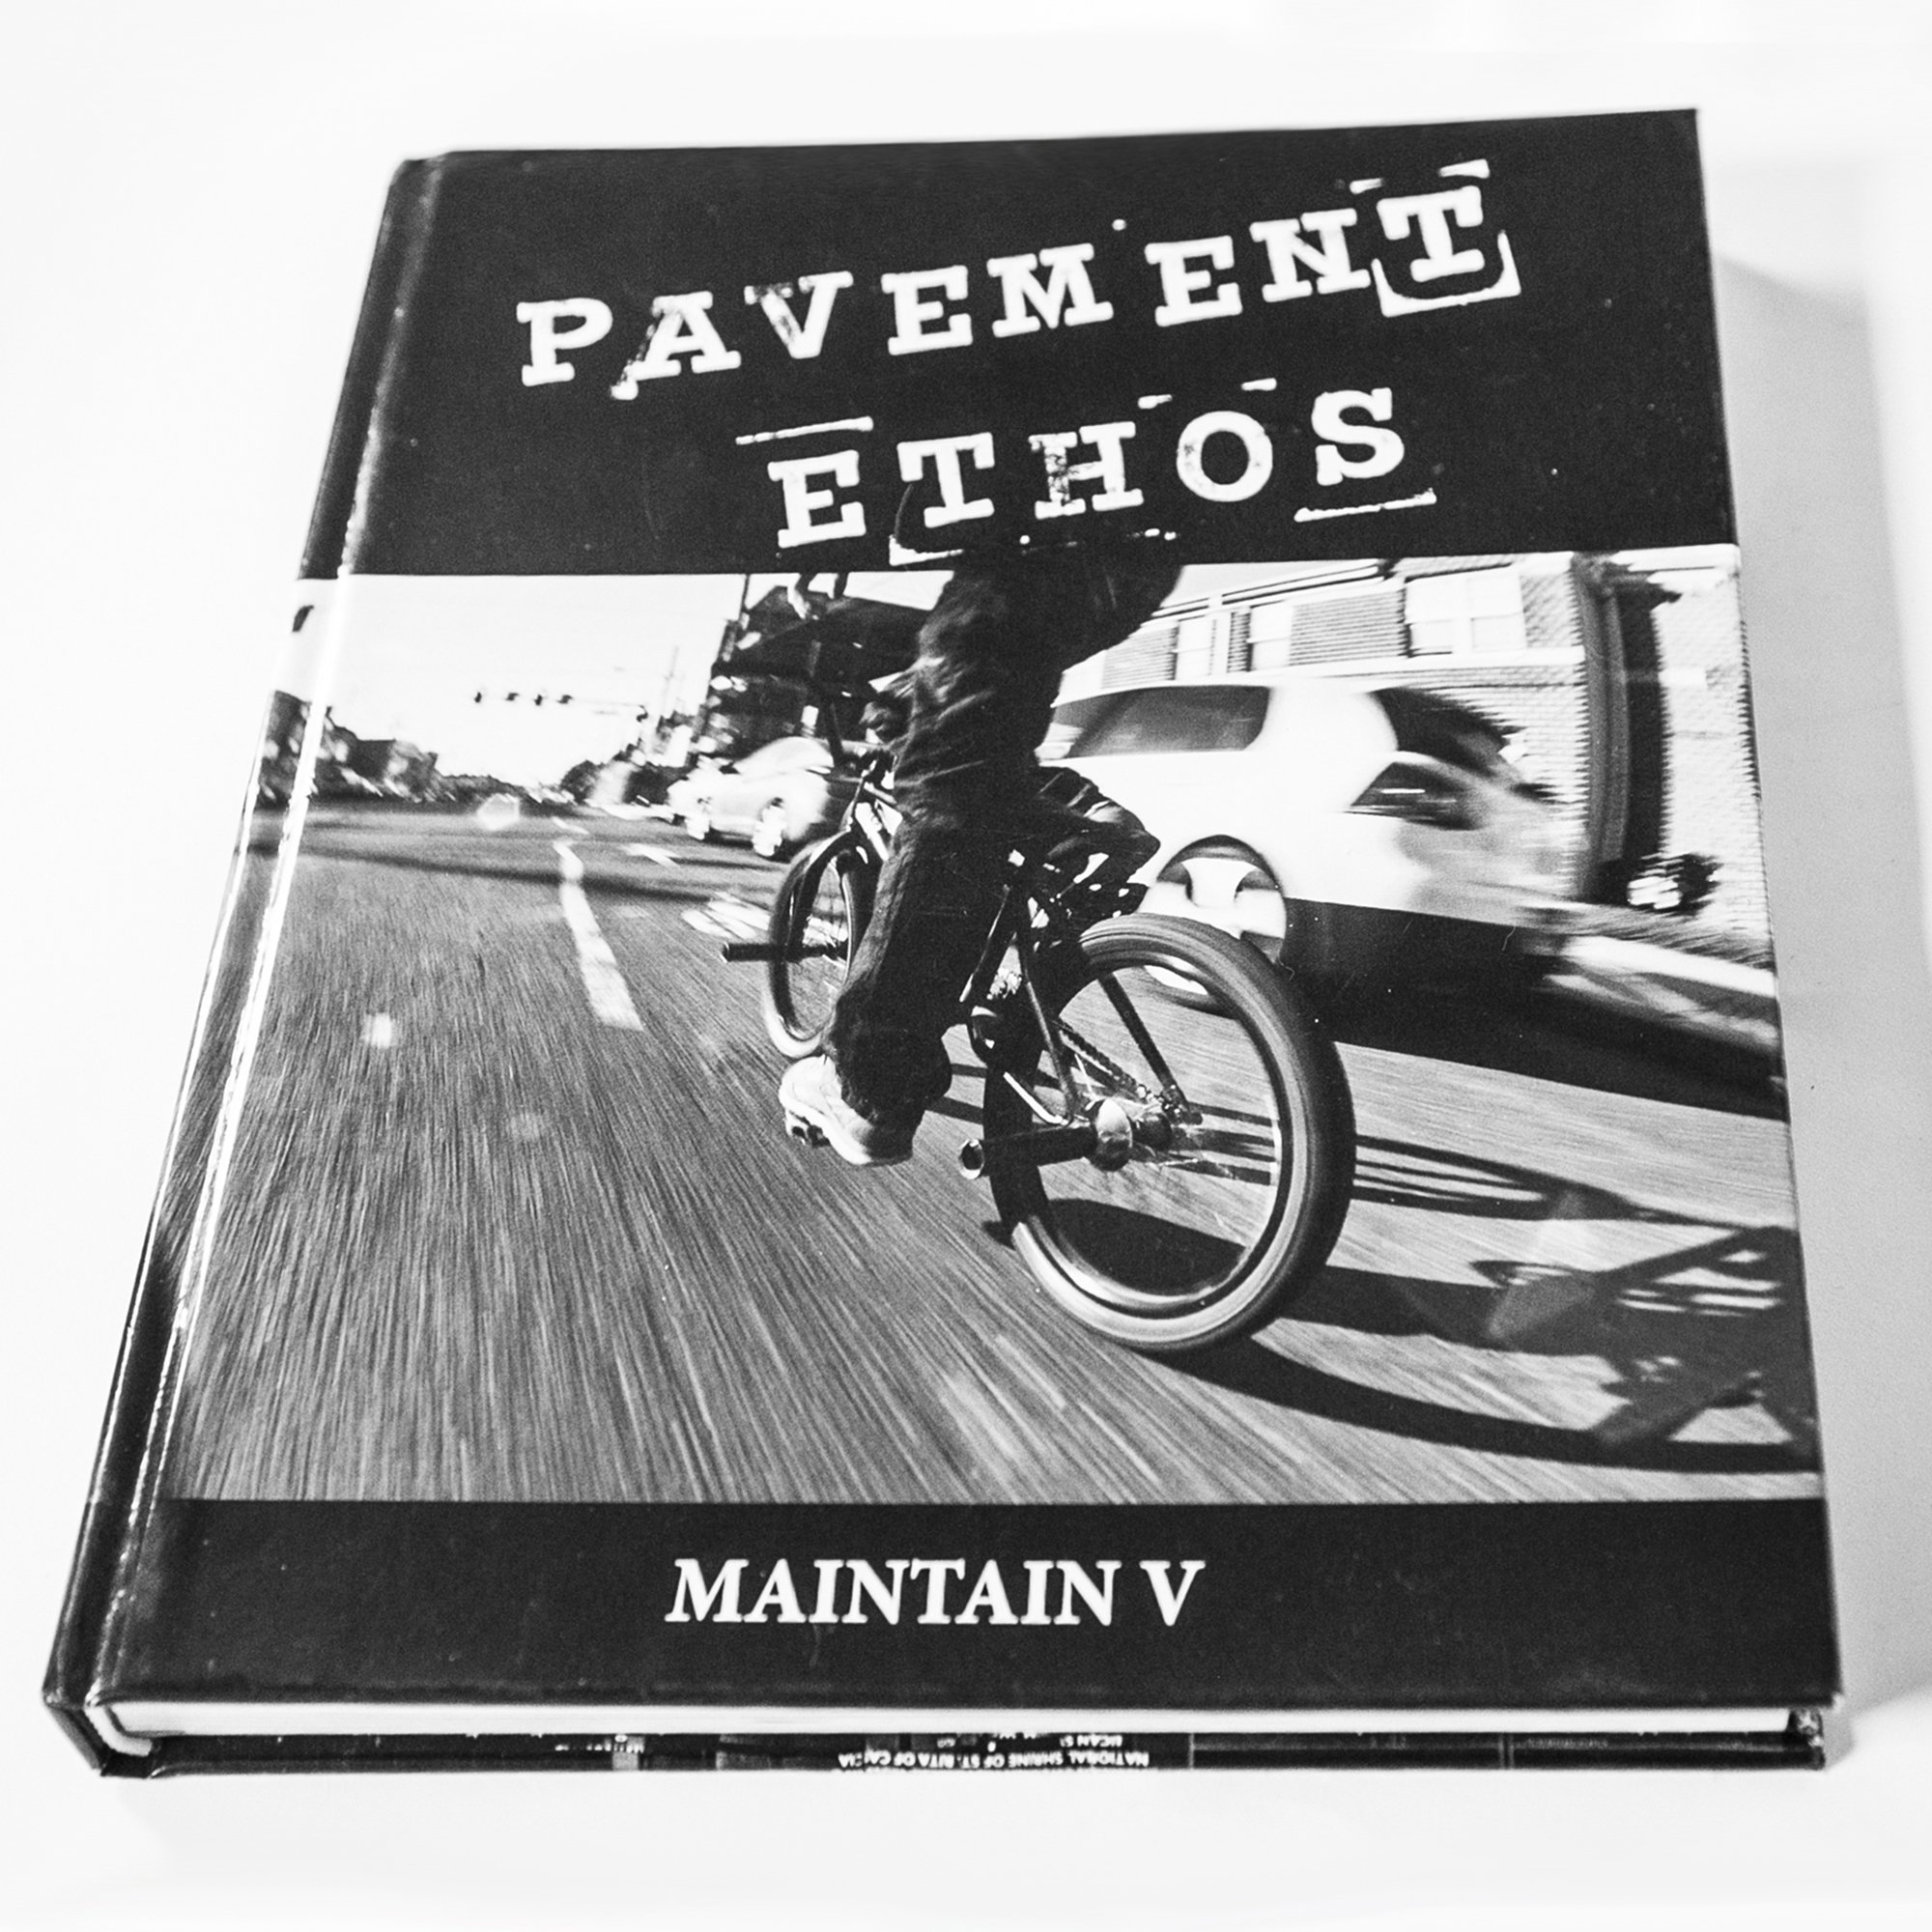 """You are currently viewing MAINTAIN V """"PAVEMENT ETHOS"""" BOOK BY ROB DOLECKI"""